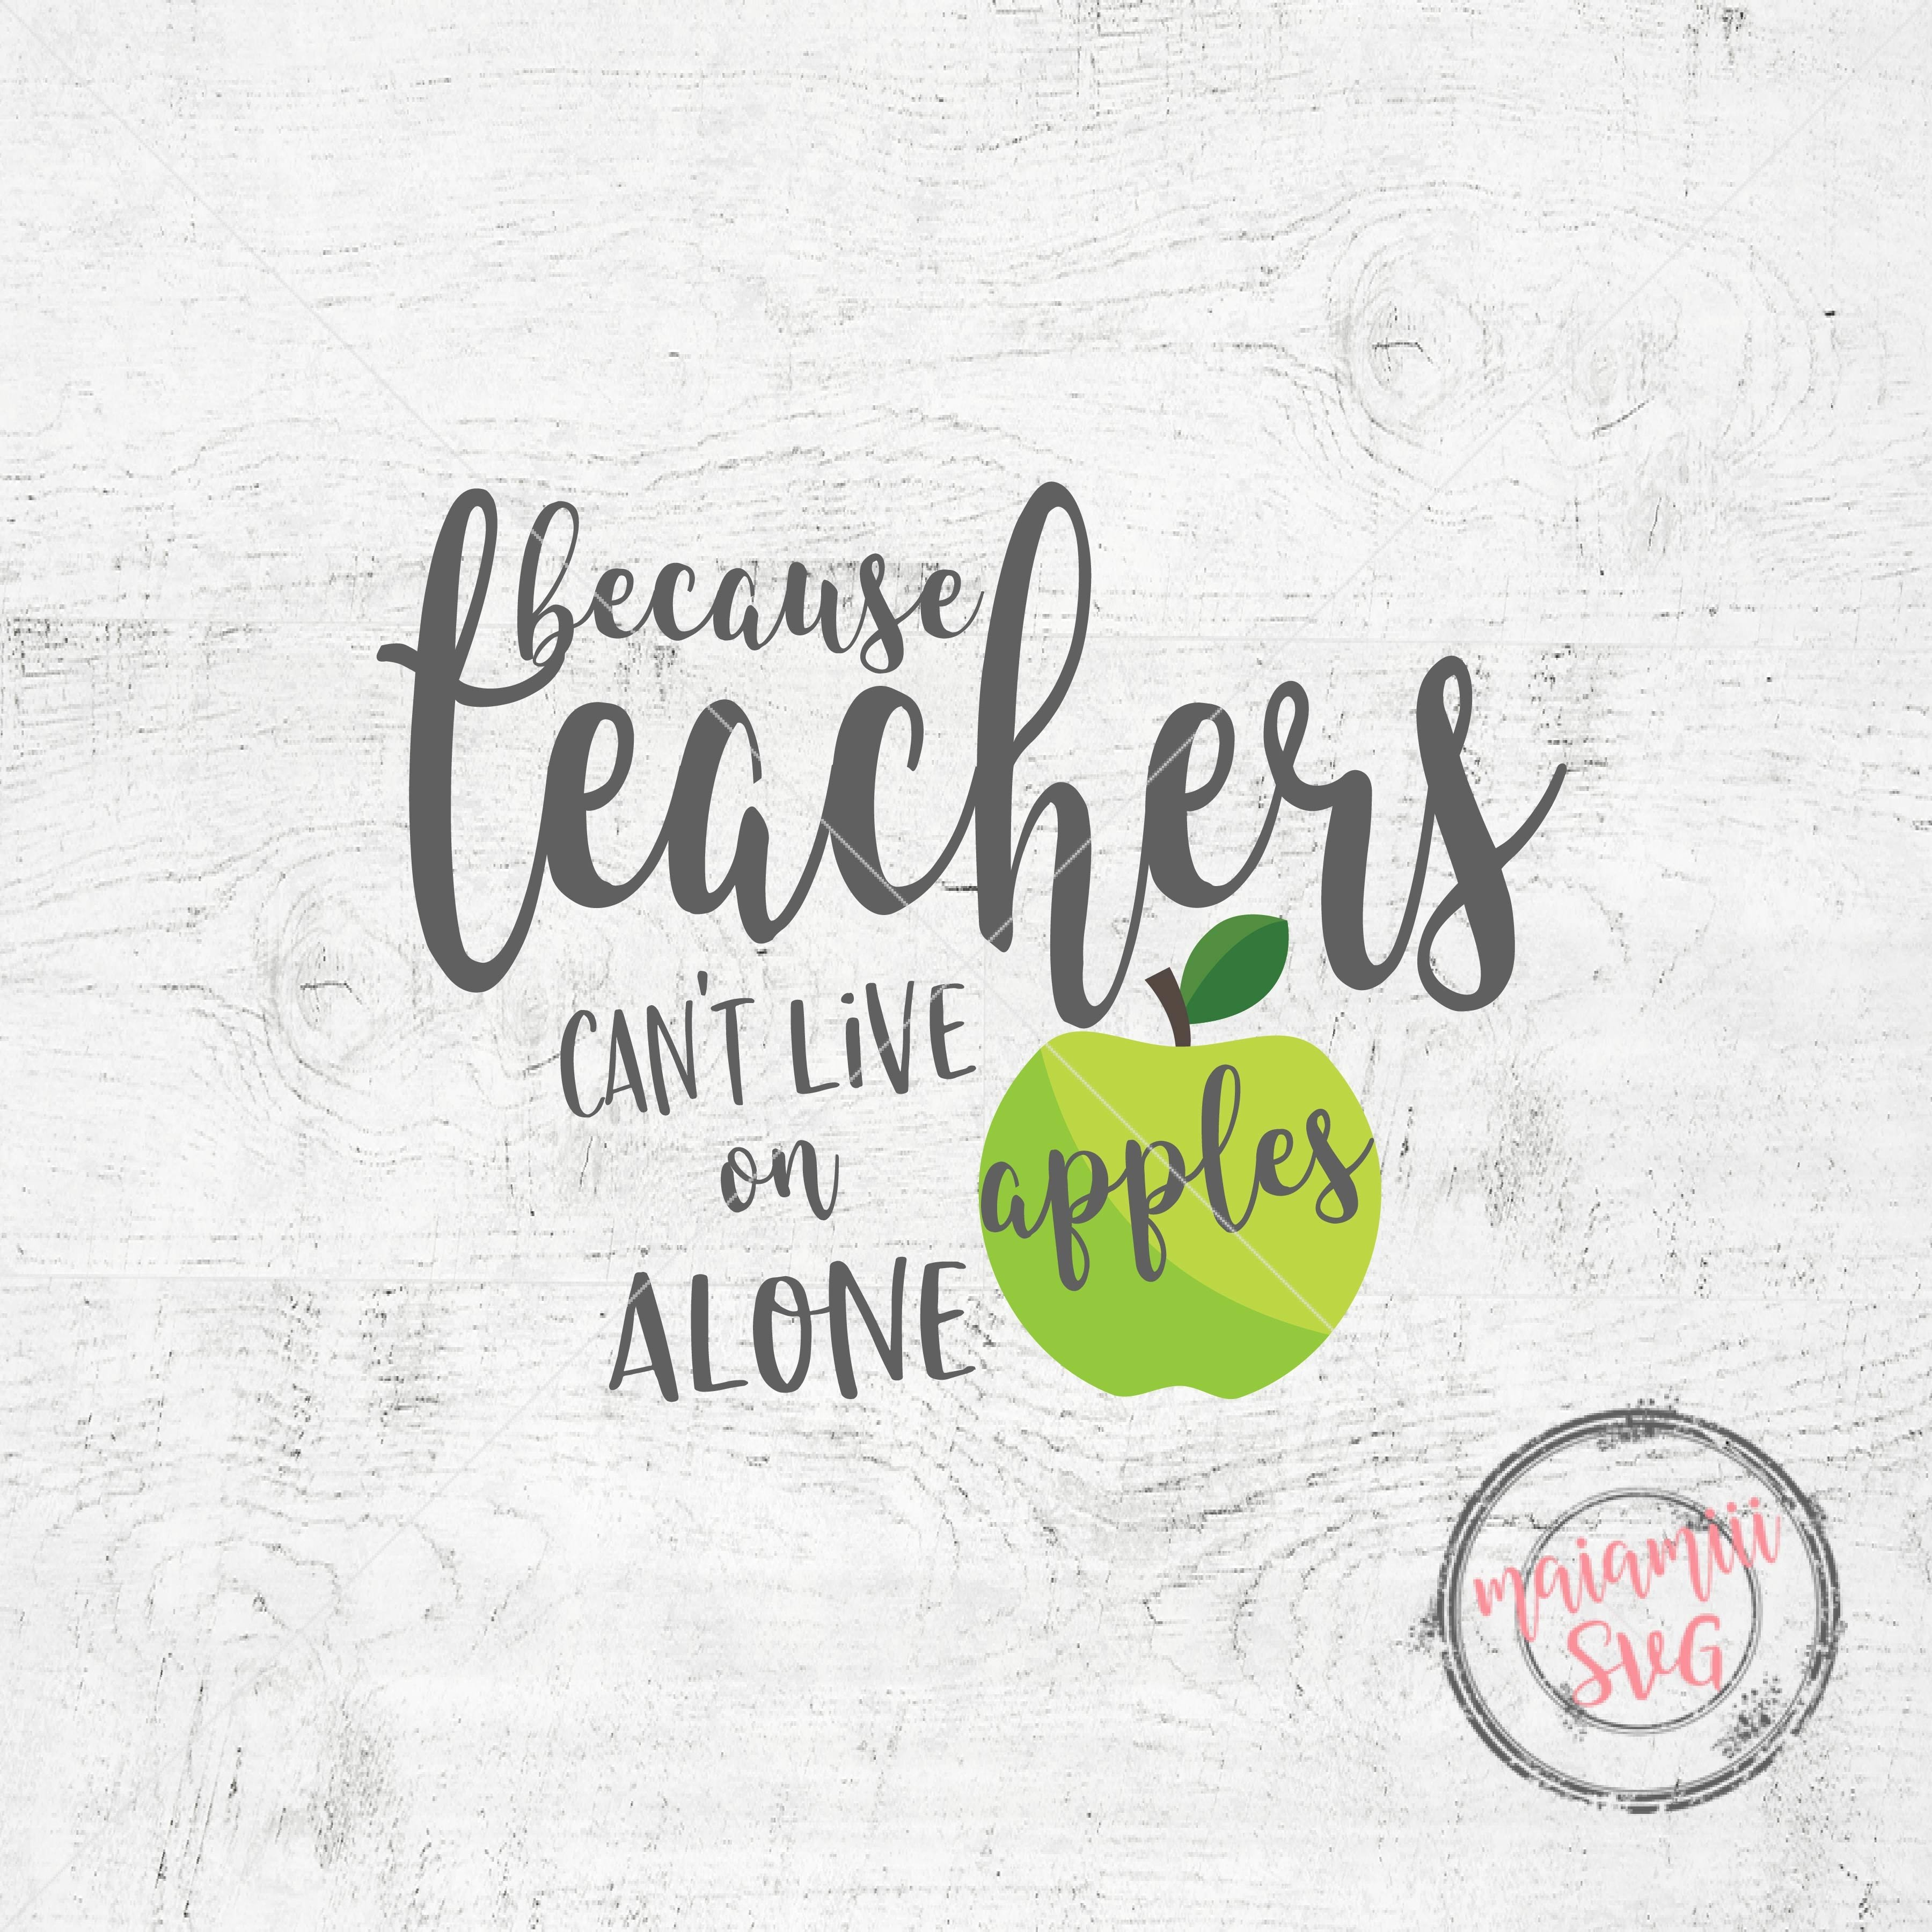 Because Teachers Can T Live On Apples Alone Svg Teacher Svg Funny Teacher Svg Teaching Svg Png Dxf Eps 77095 Scrapbooking Design Bundles